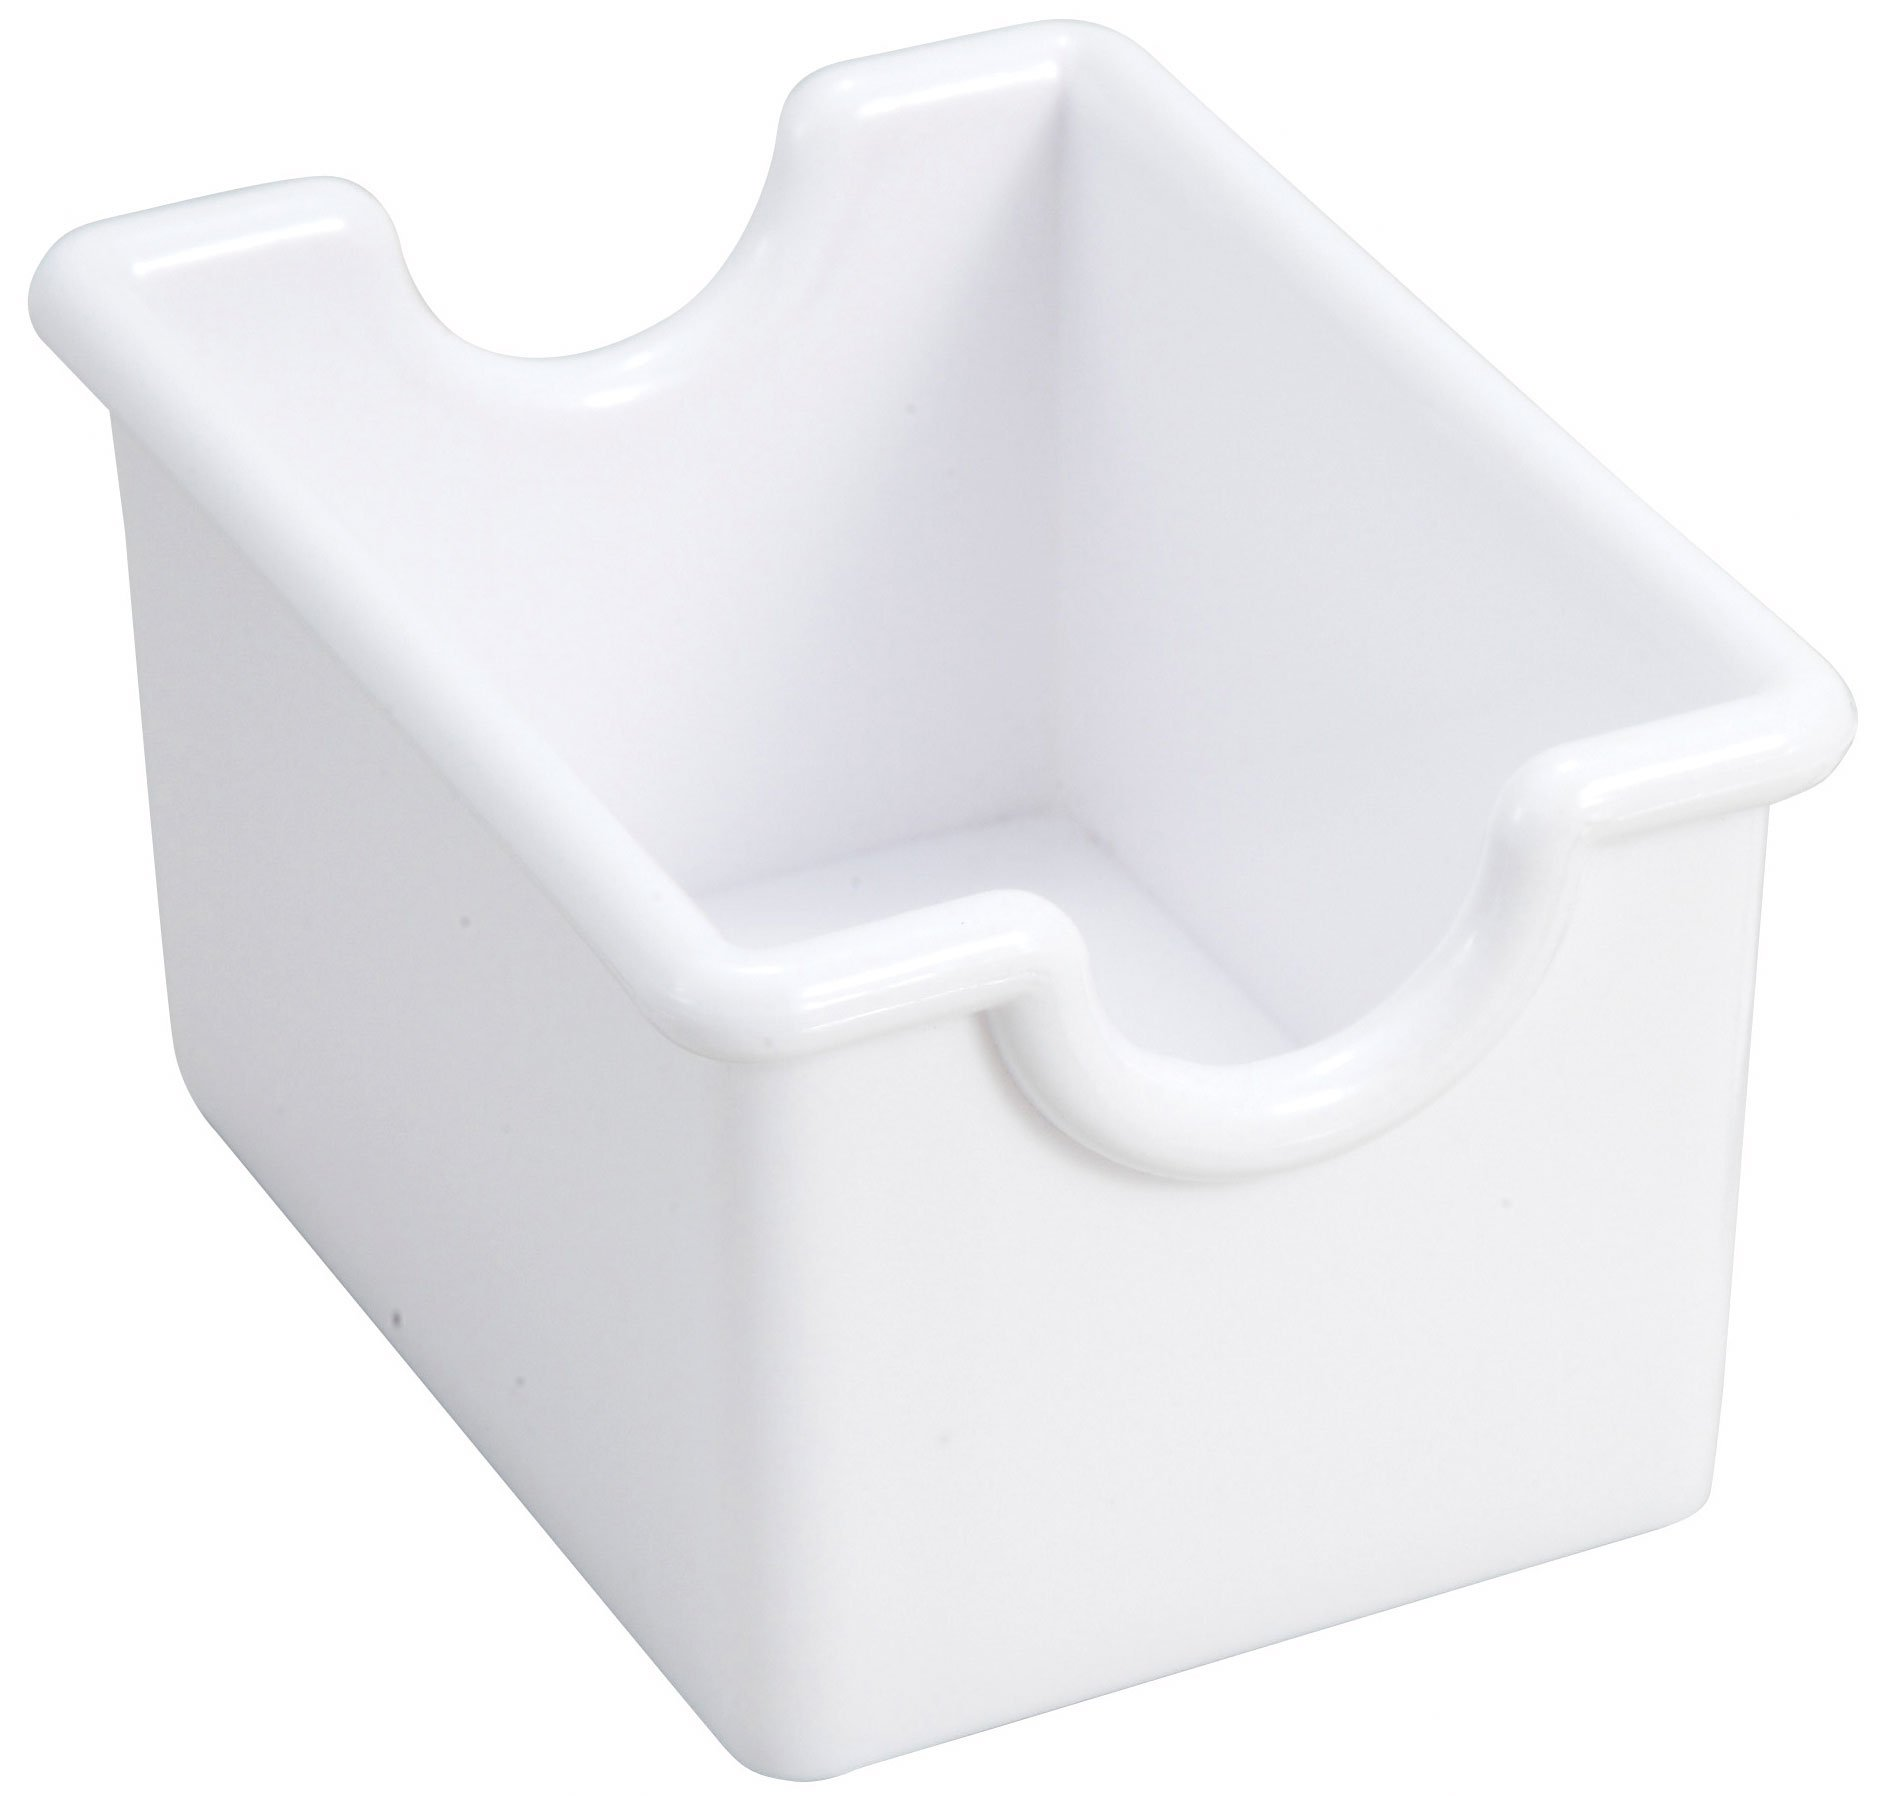 Winco 12-Piece White Sugar Packet Holder